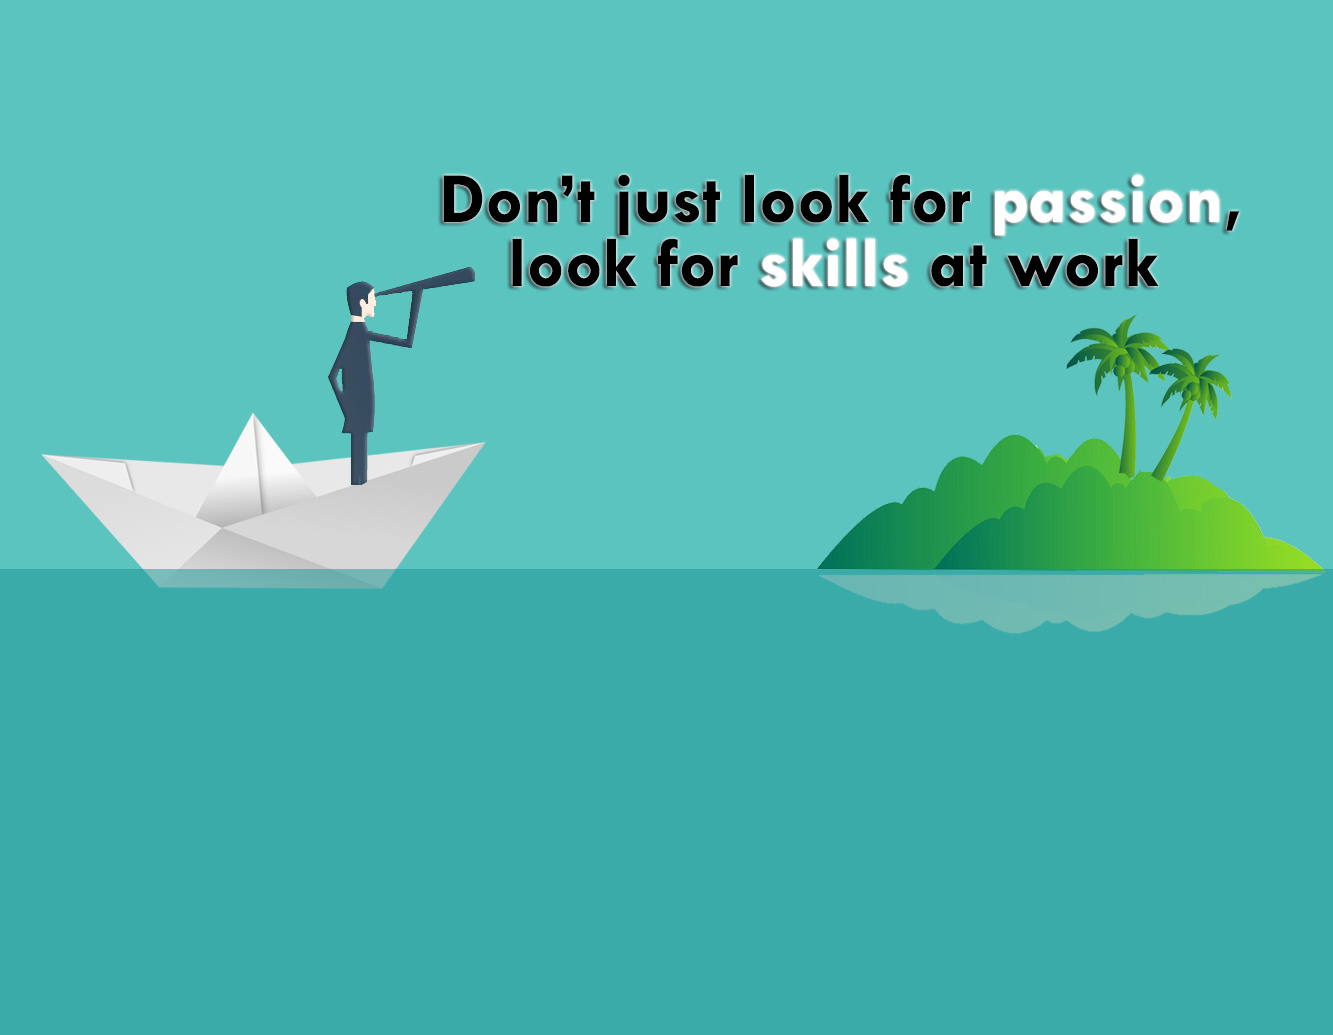 Don't just find passion also build skills at work